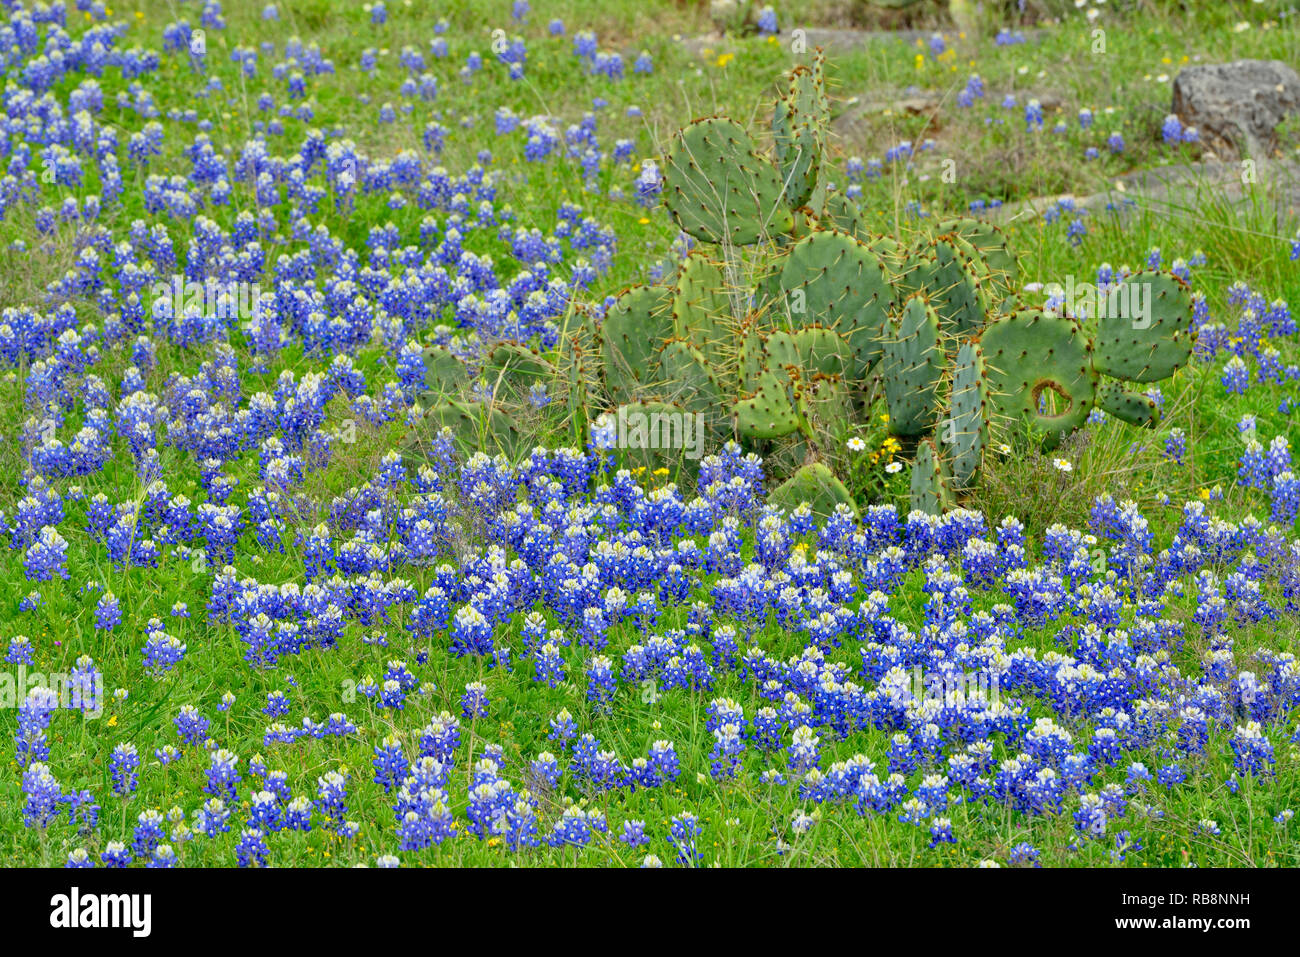 Texas bluebonnets and prickly pear cactus, Burnet, Texas, USA - Stock Image